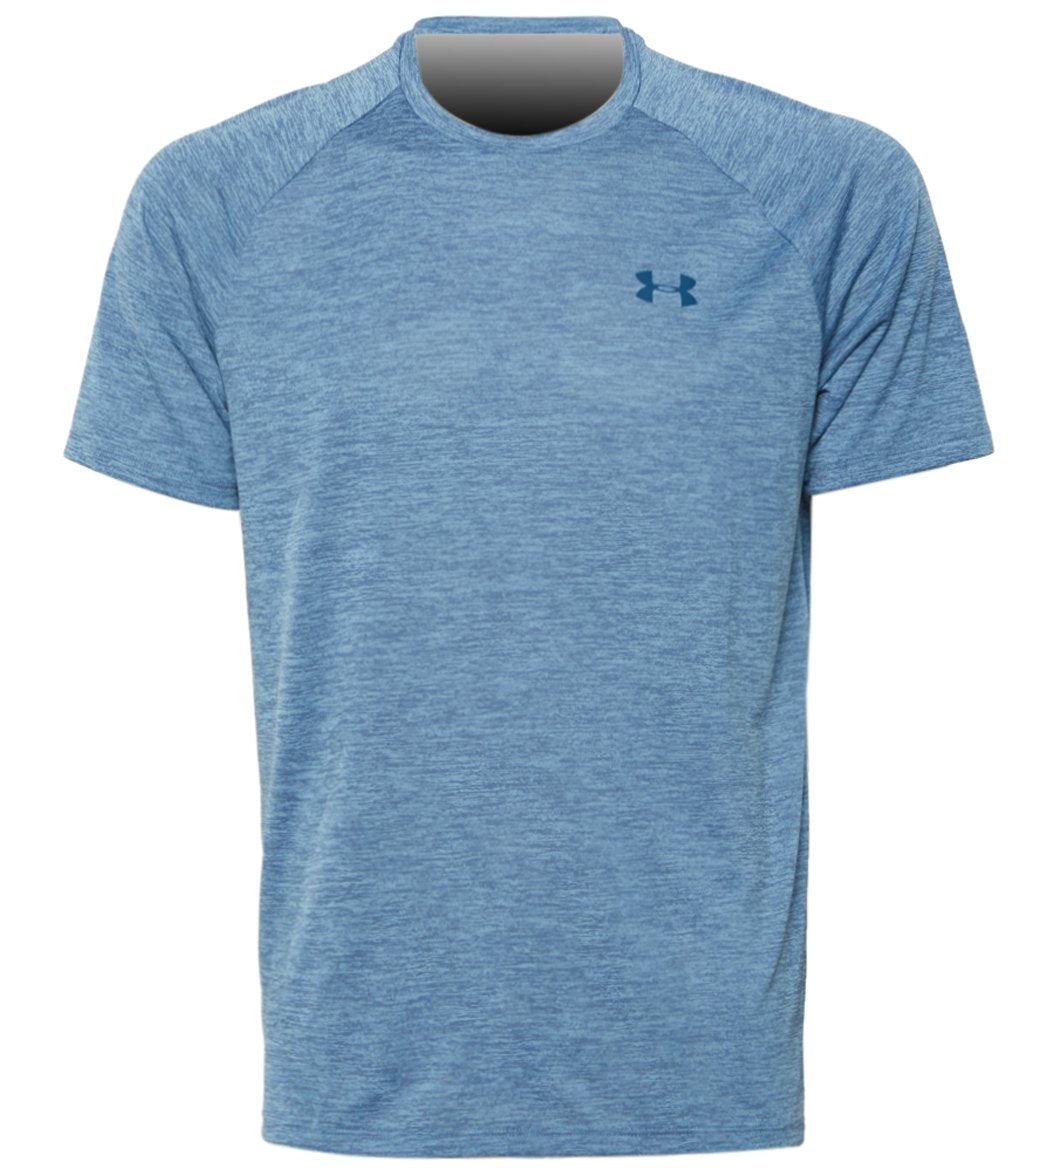 Problema visual pasta  Under Armour Men's UA Tech 2.0 Short Sleeve Tee at YogaOutlet.com